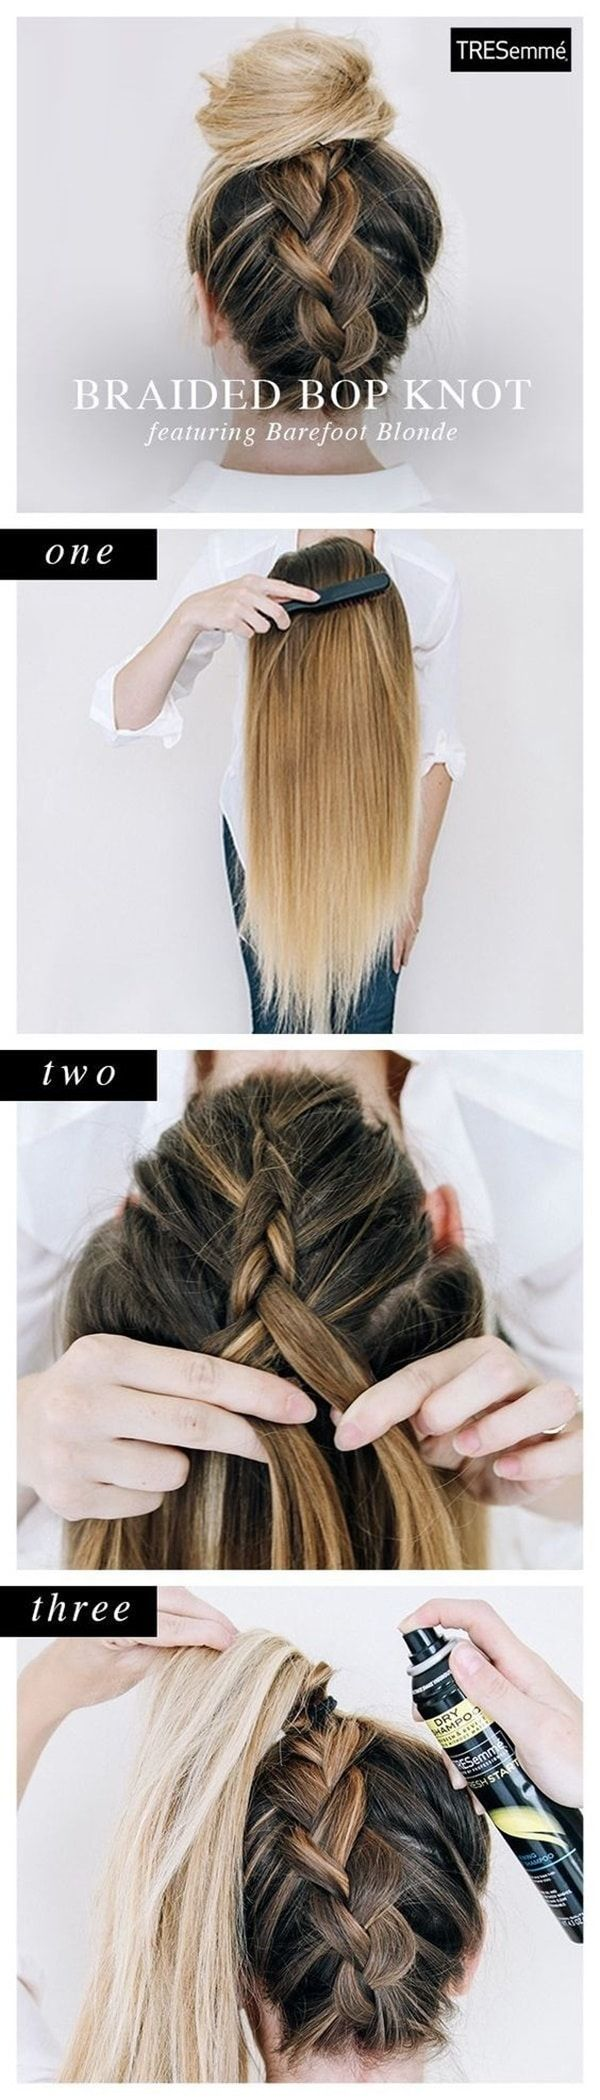 quick-hairstyle-tutorials-for-office-women-34